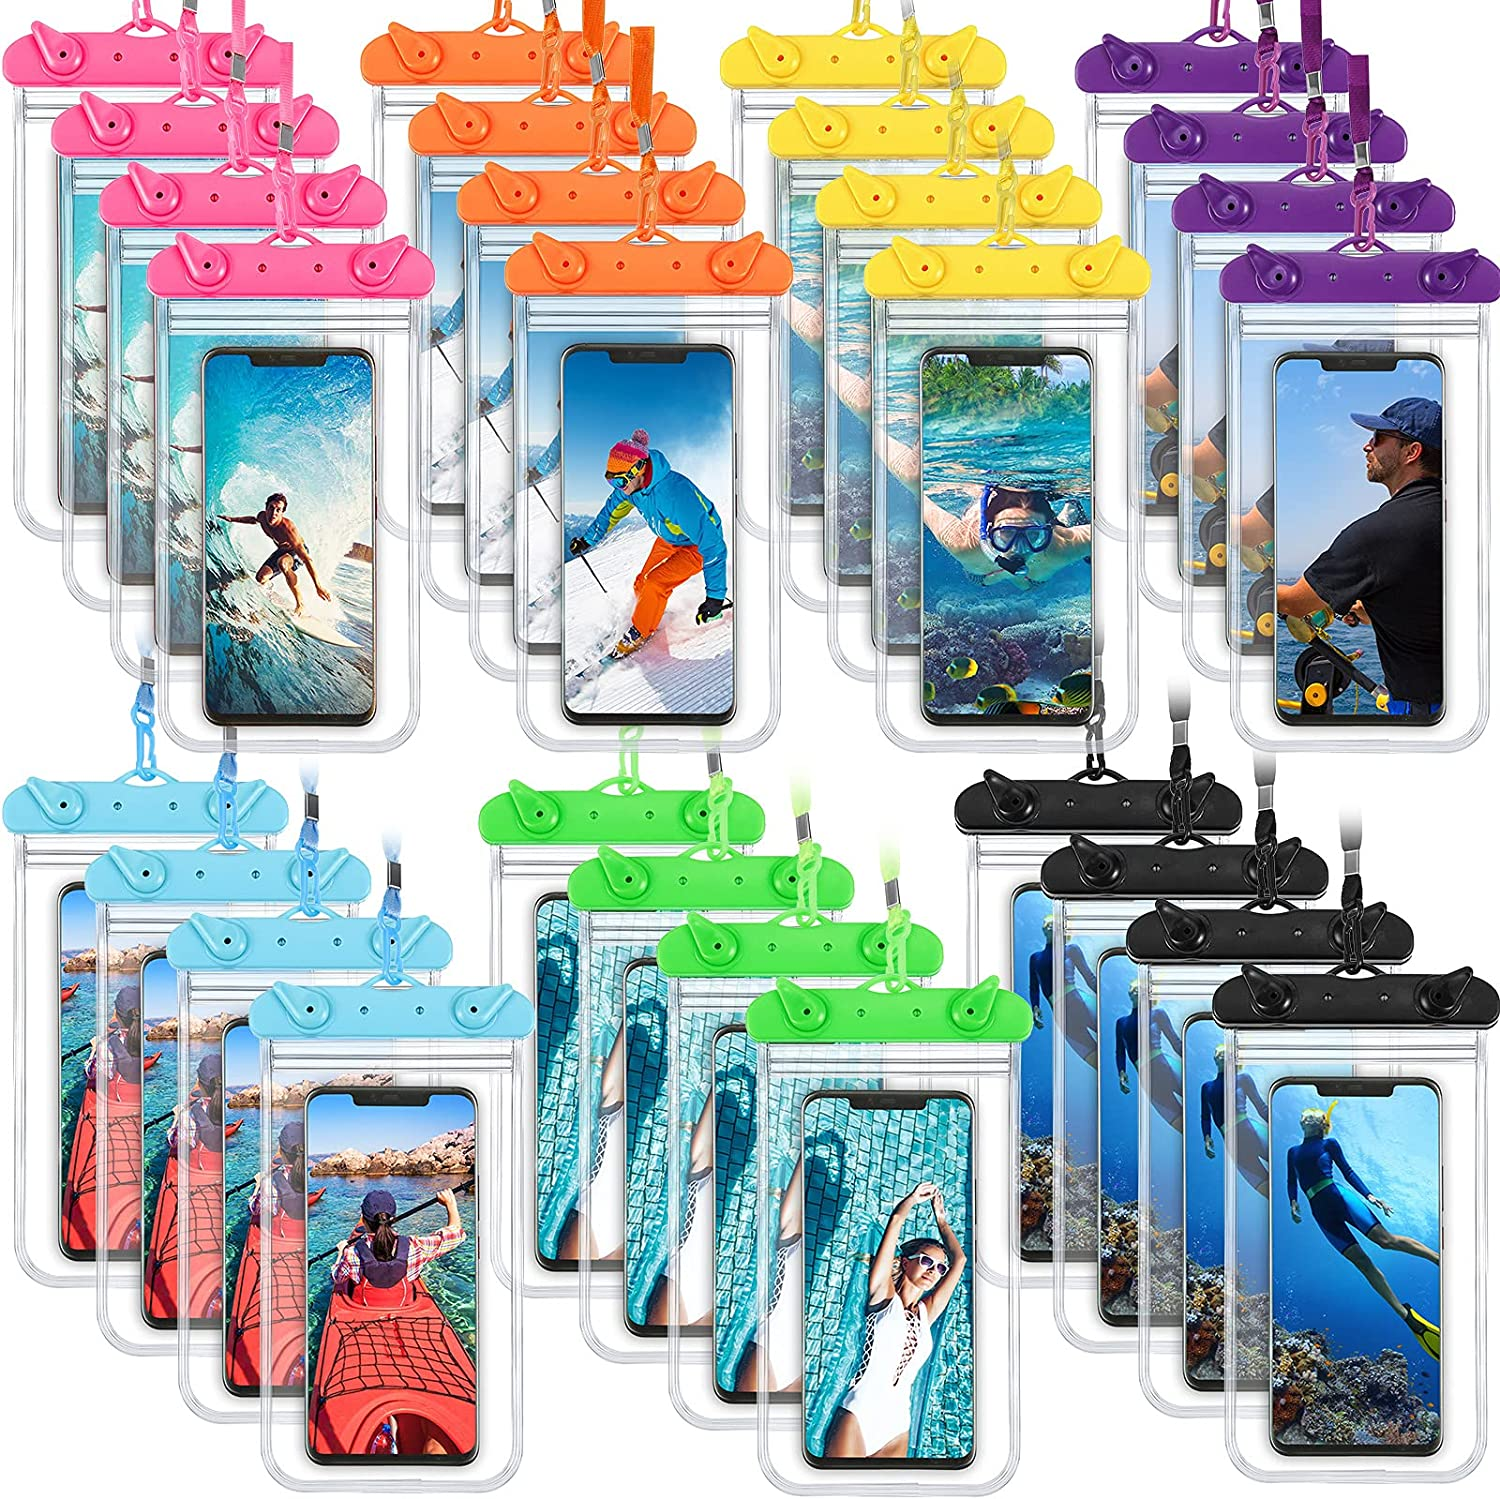 28 Pieces Universal Waterproof Phone Pouch Waterproof Phone Holder Underwater Clear Case Cellphone Dry Bag with Lanyard 7 Colors Outdoor Beach Swimming Floating Pouch Within 3.9 x 6.9 Inches